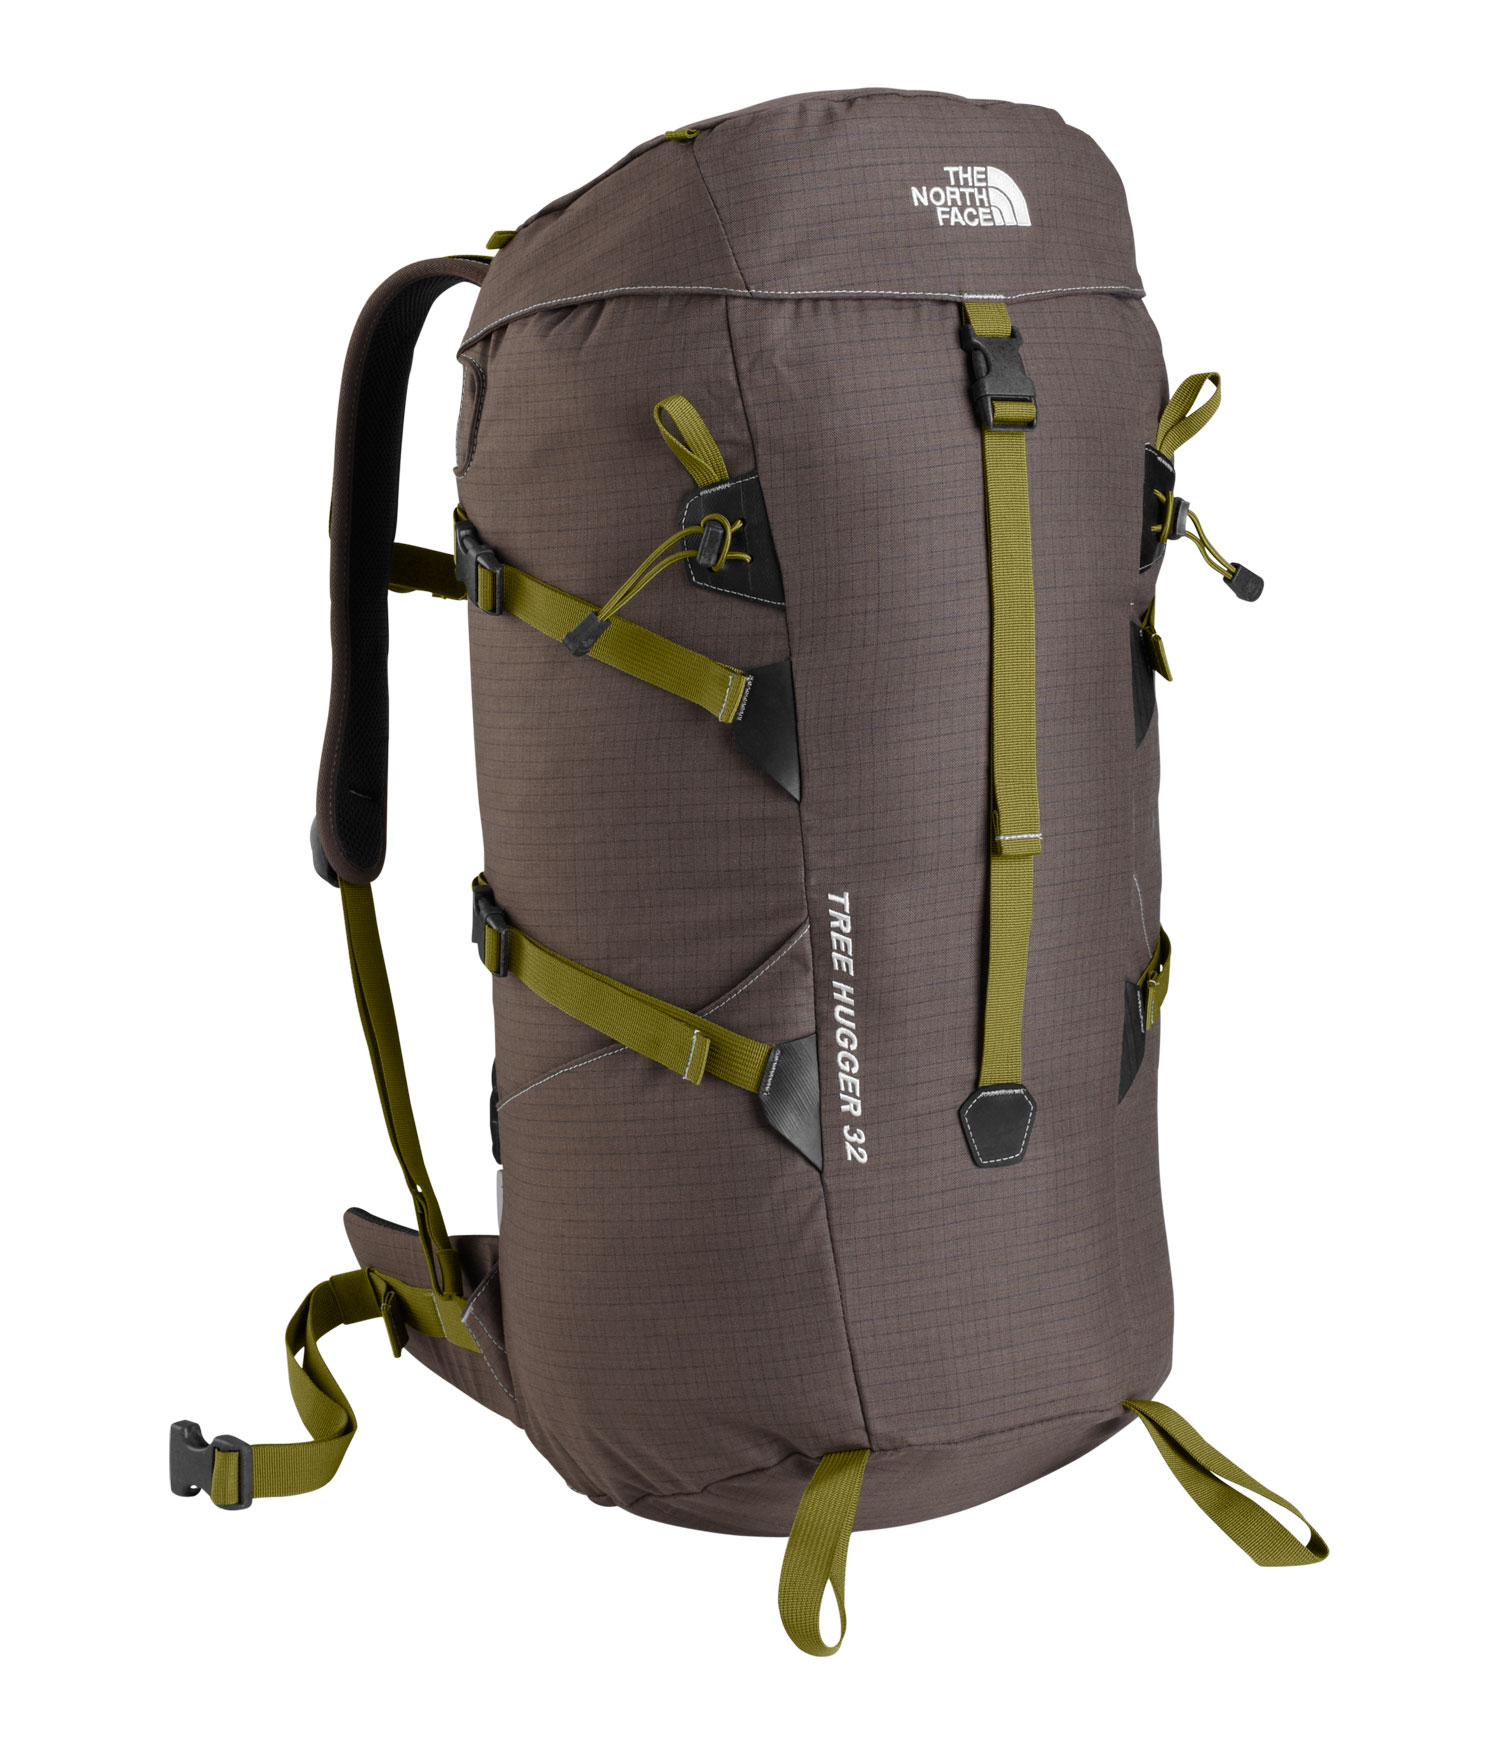 The North Face Tree Hugger Backpack is a versatile and eco-friendly work of art and utility made from recycled materials.  Comfy foam mesh back panels will take your mind off of your baggage while you're gazing on and breathing in the beautiful outdoors.   It also features nifty outside pockets to hold your camera, phone and other items you might need to access quickly.  For the hiker and camper who is also environmentally conscientious, there is great peace of mind in knowing that everything from the buckles to the webbing on the North Face Tree Hugger Backpack has been recycled.Key Features of The North Face Tree Hugger 32L Backpack: 100% recycled polyester webbing, mesh, foams, and pack fabric panels Recycled, reground plastic buckles Convenient exterior pockets Comfy, breathable back panel mesh pods Multiple compression points lend versatility Average Weight: 2 lbs 14 oz (1290 g  Volume: 1950 in³ (32 liters  Fabric: 100% merino wool ripstop - $108.95